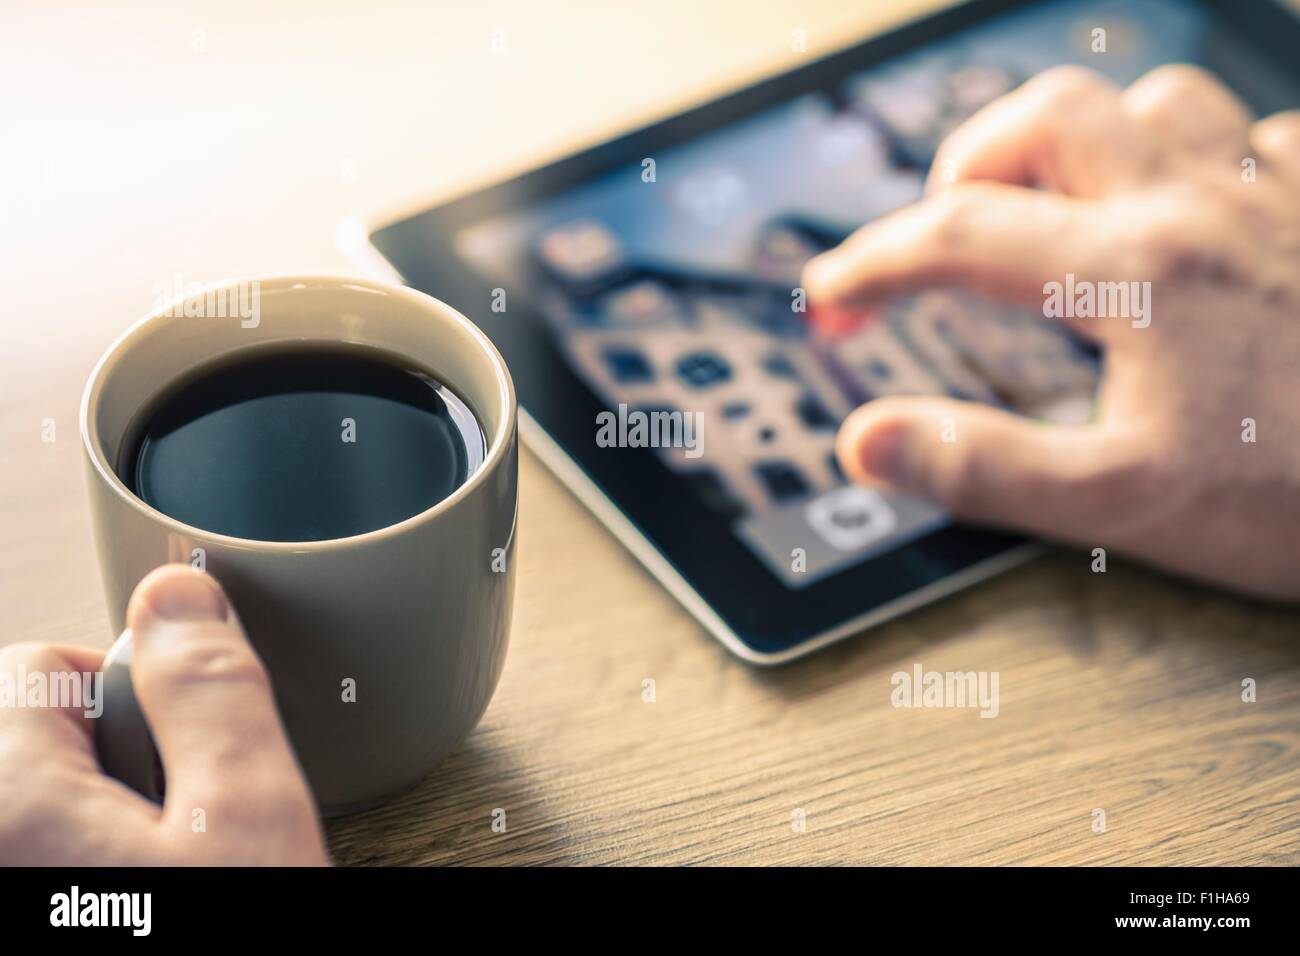 Hands of man using digital tablet touchscreen - Stock Image